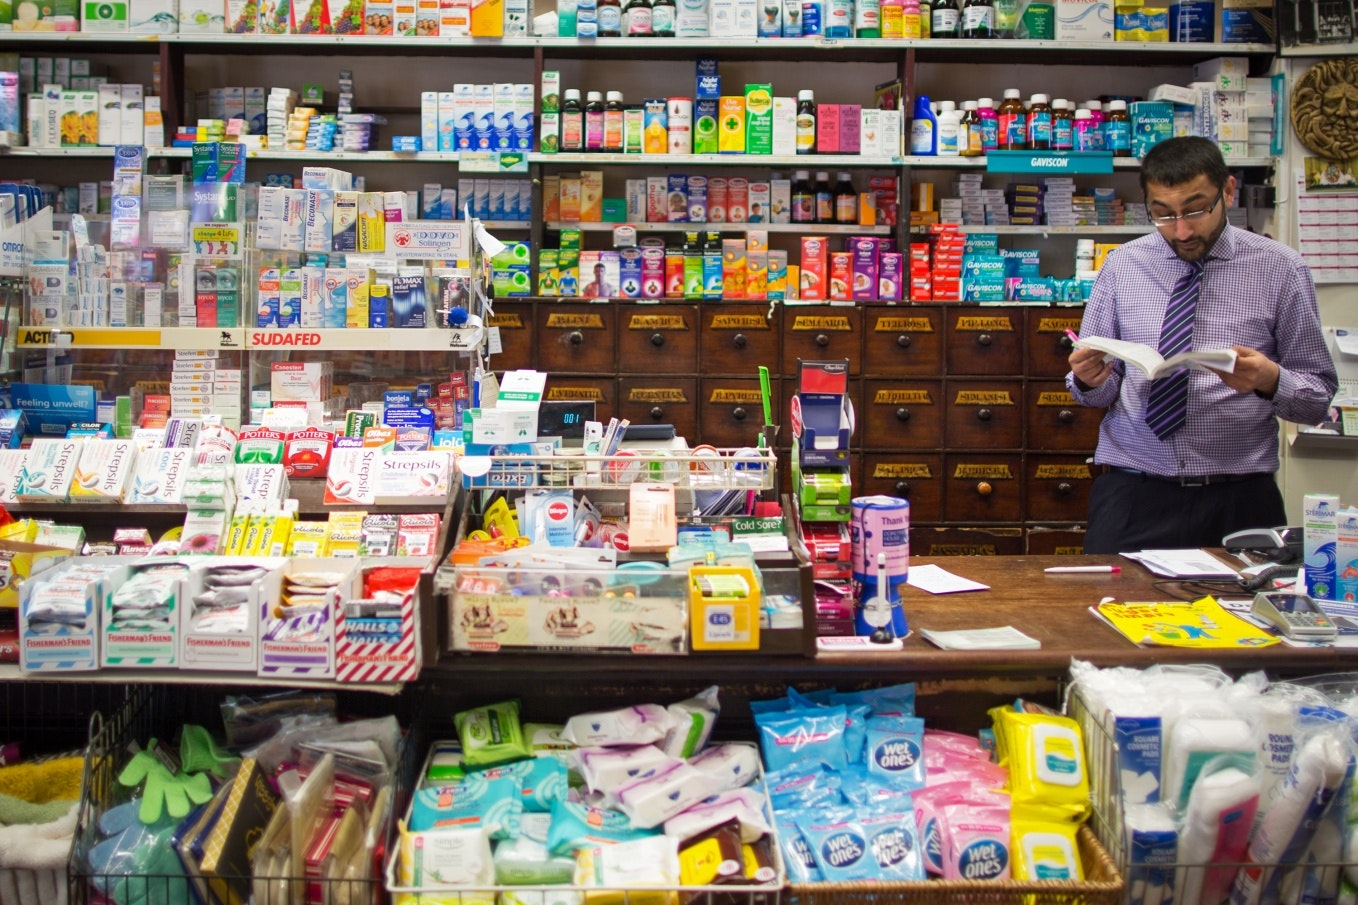 A man behind the counter at a pharmacy